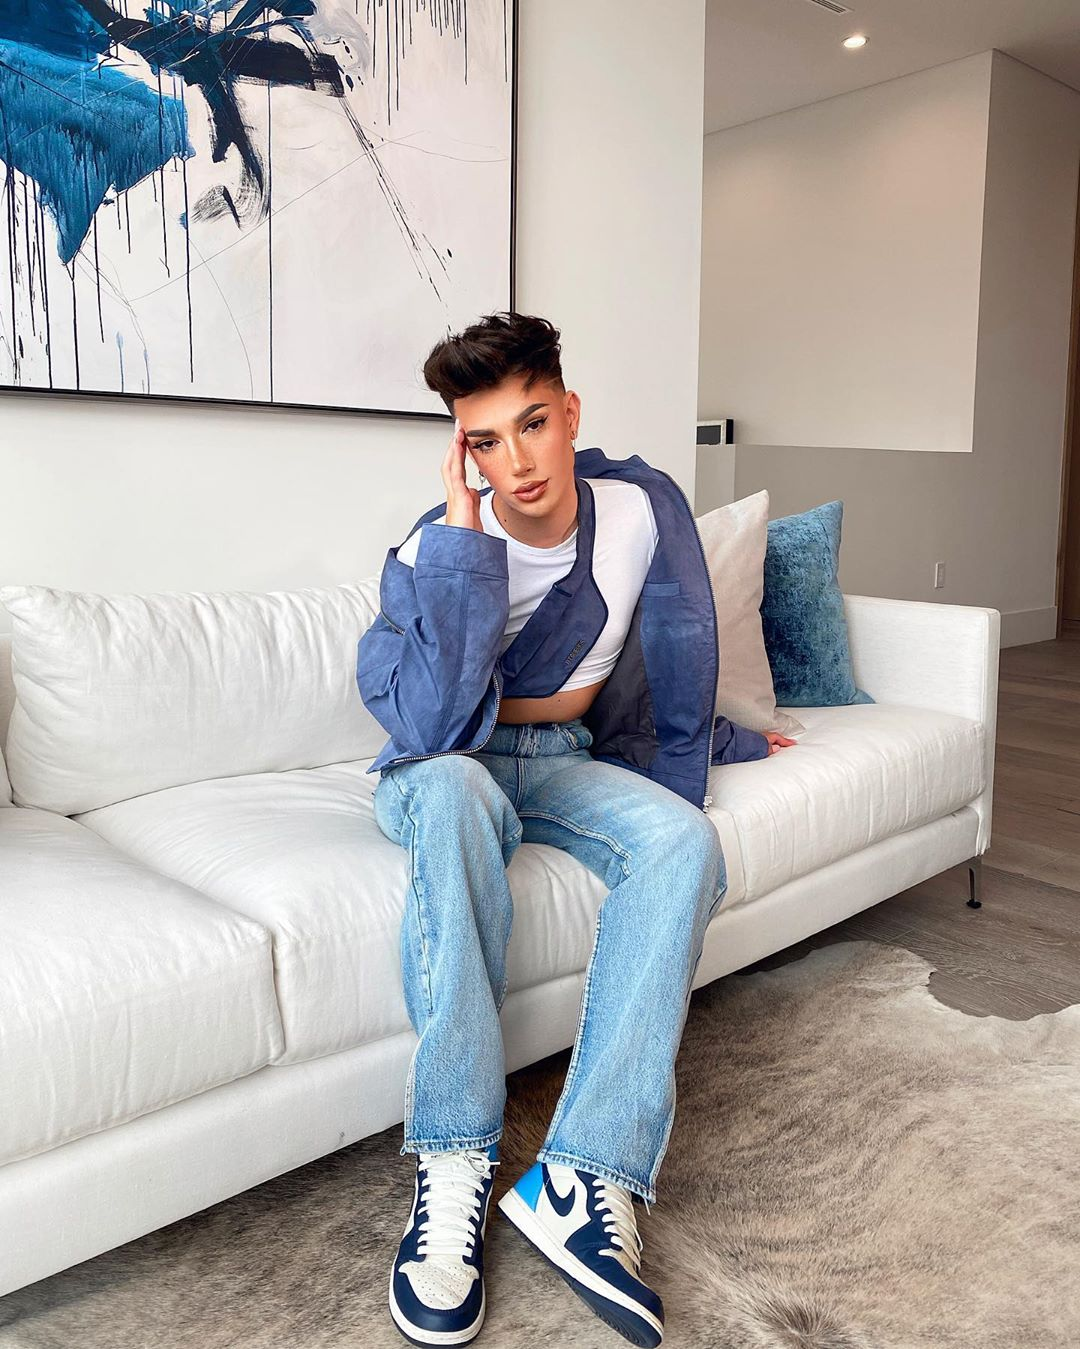 jamescharles_119096137_614975826053671_4217156952394337315_n